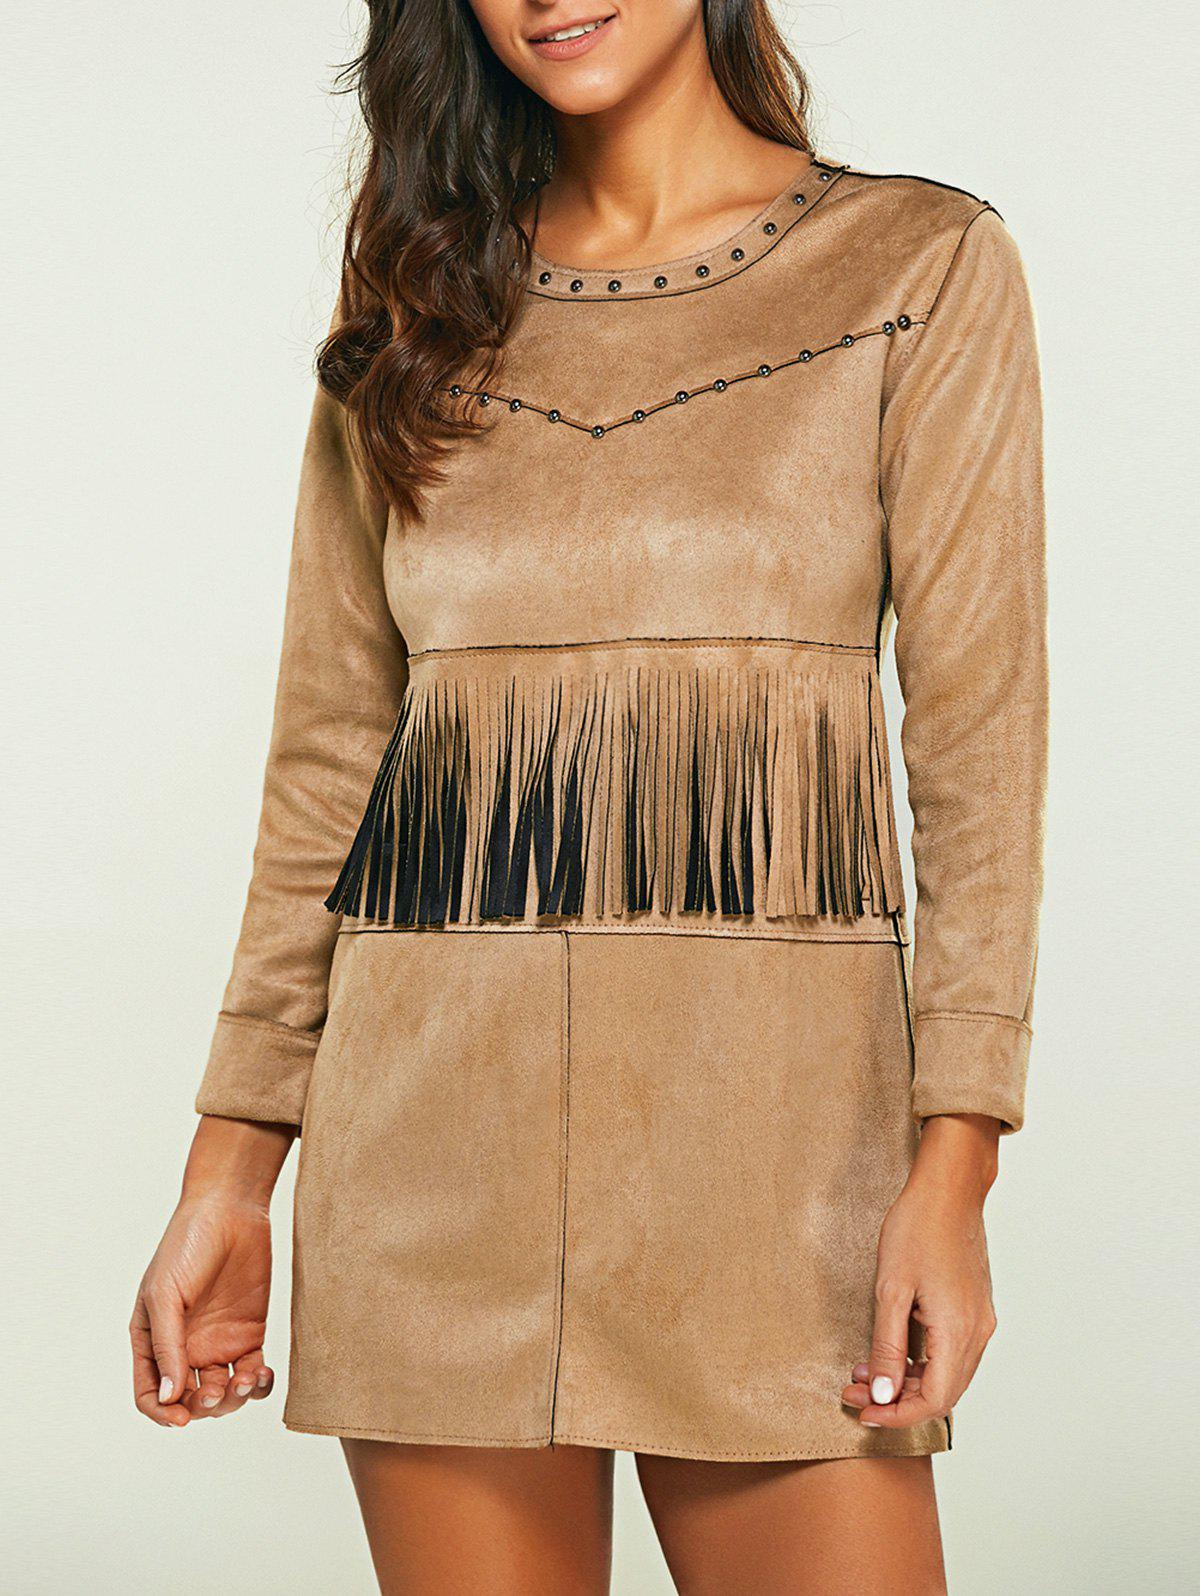 Rivet Faux Suede Long Sleeve Dress with Fringe genuine honda 77501 sh3 a01zf glove box